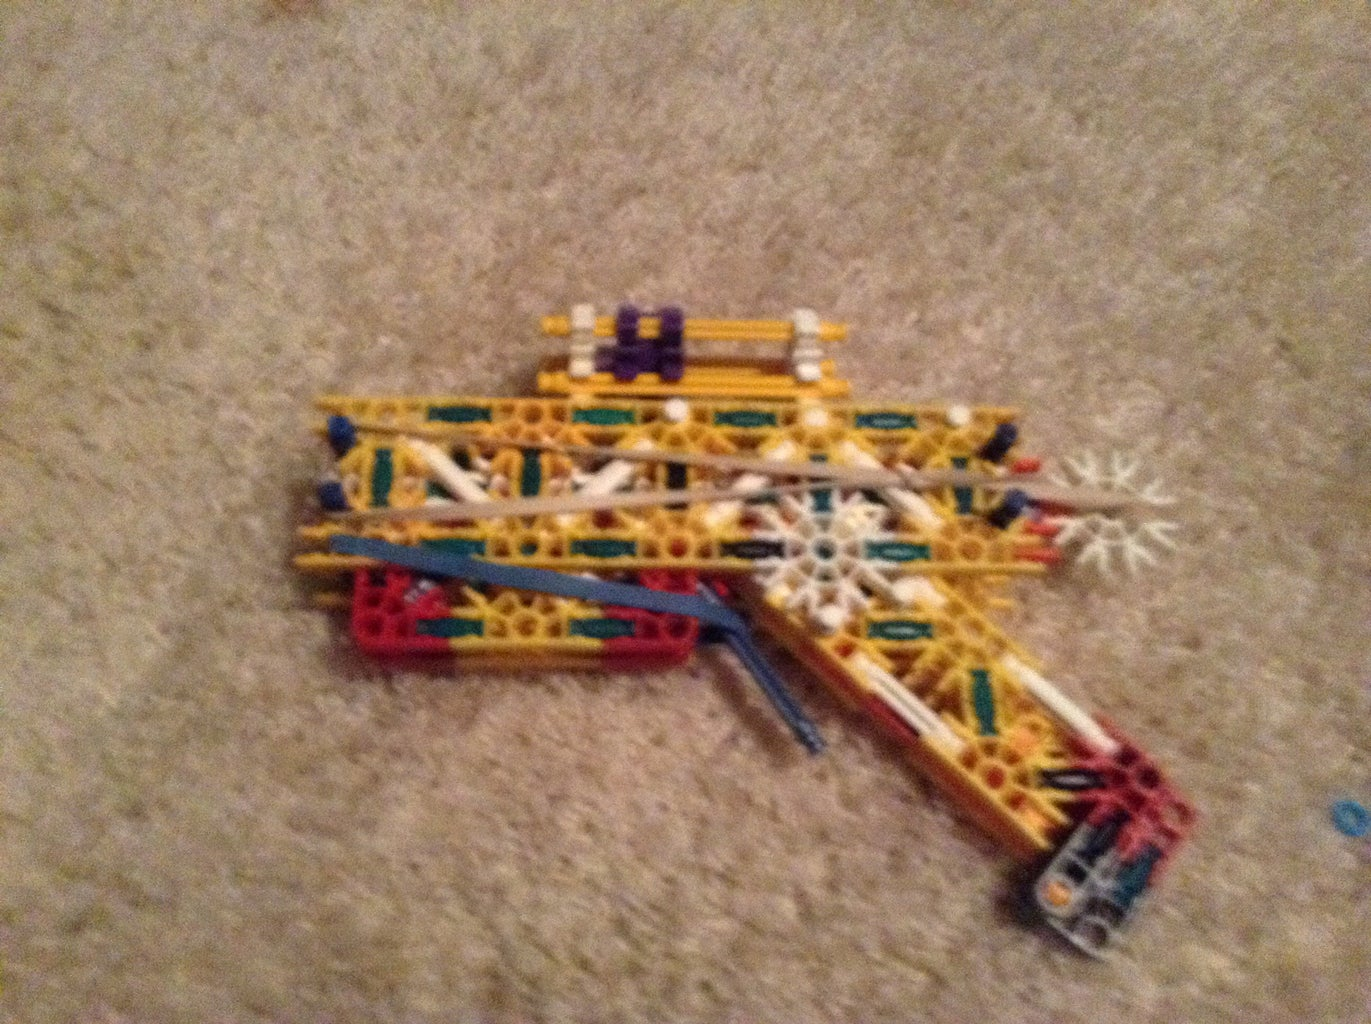 Knex Esd Pistol Turned Battle Weapon